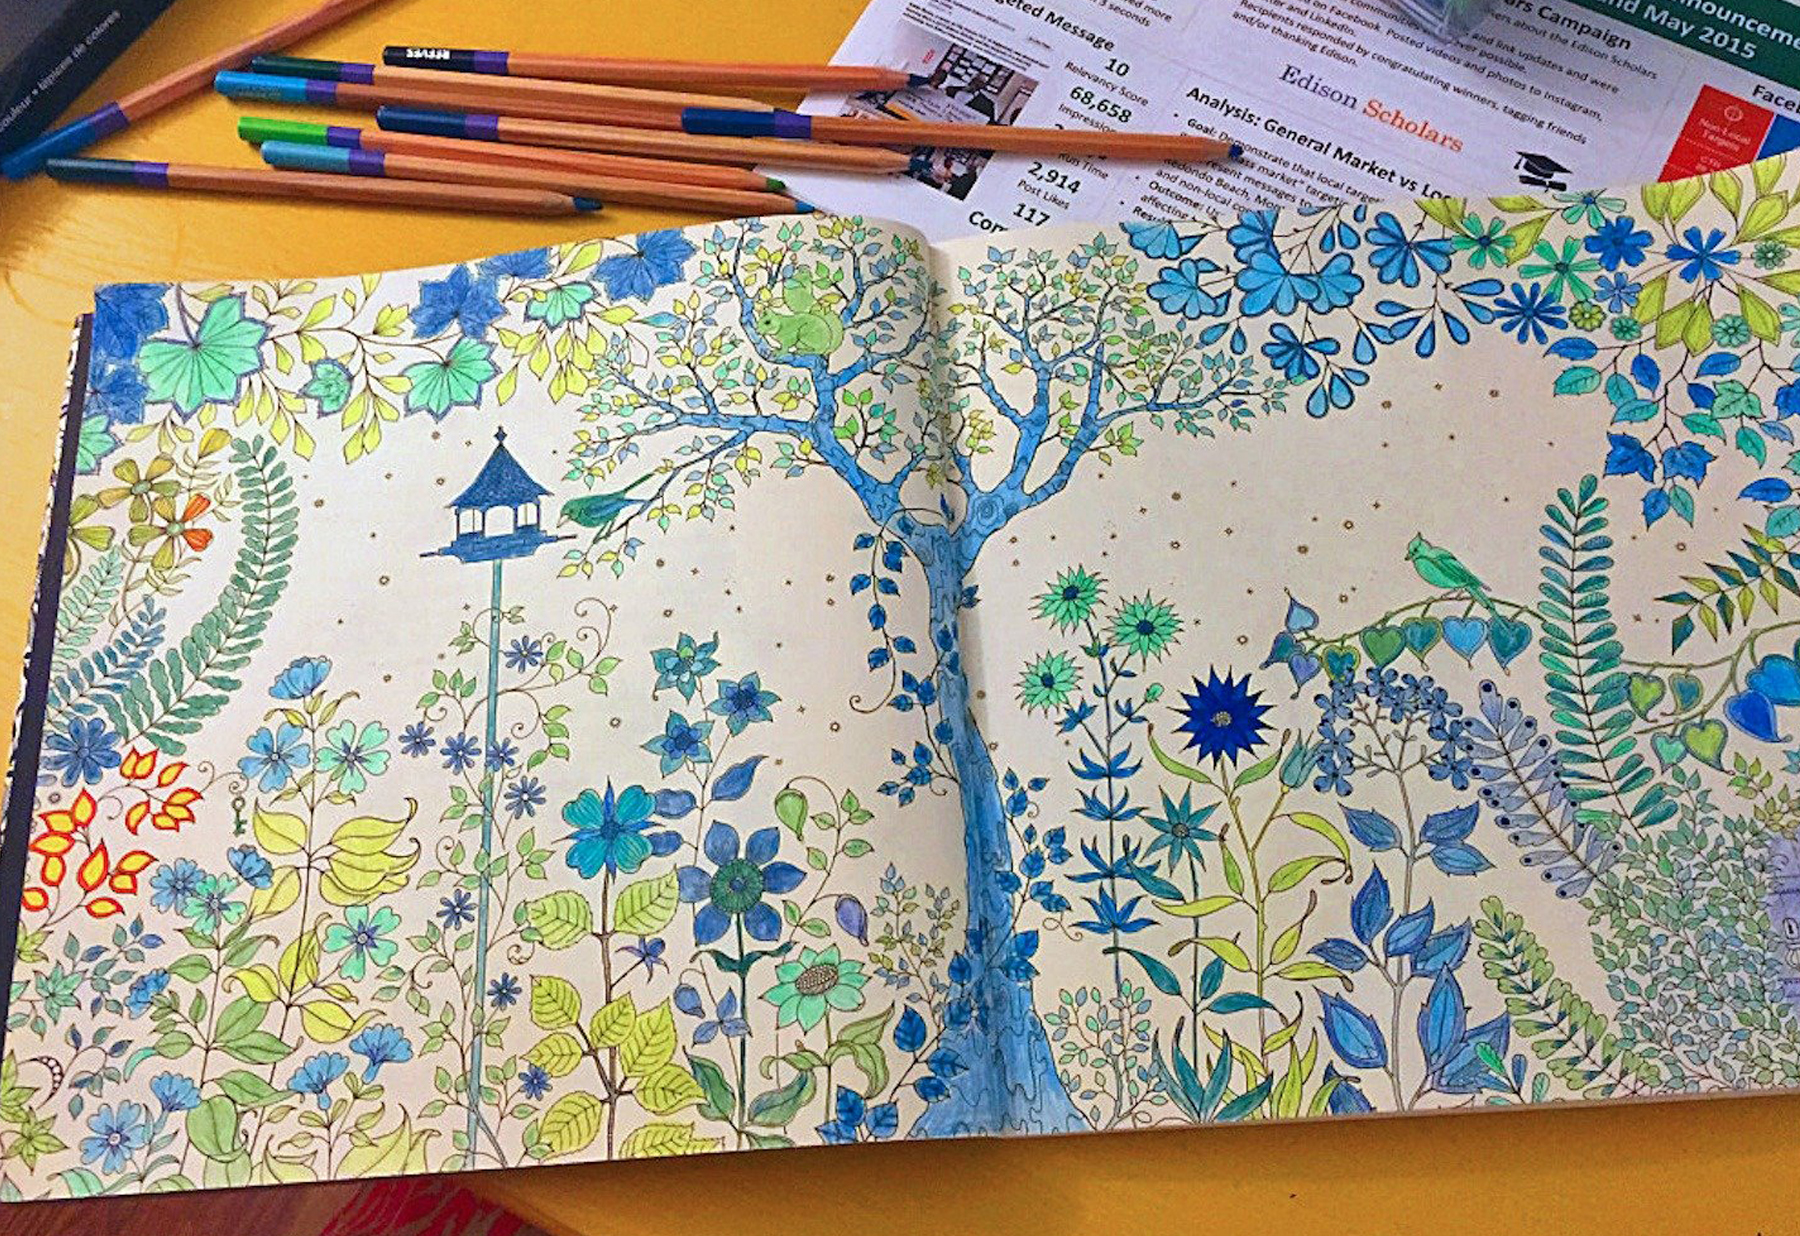 Adult Coloring Books Helped Me Through Hard Times